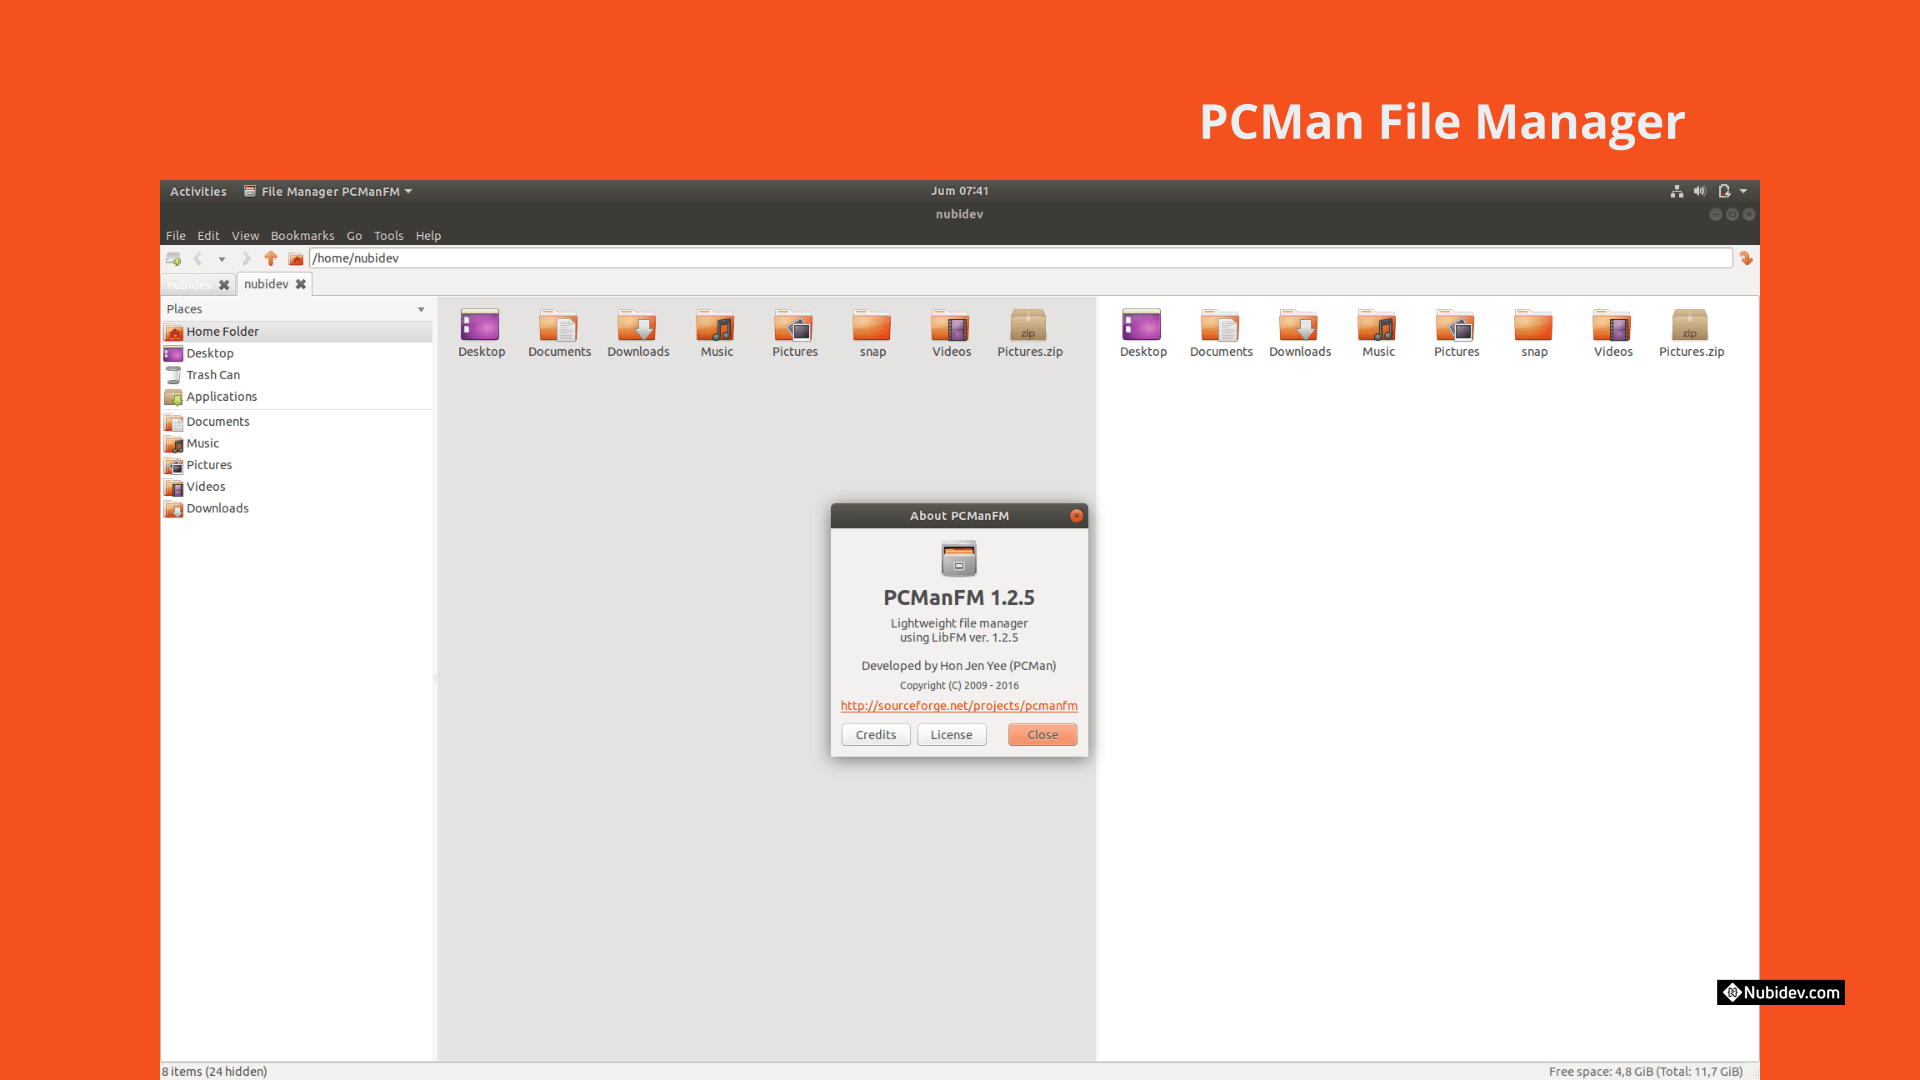 PCMan File Manager